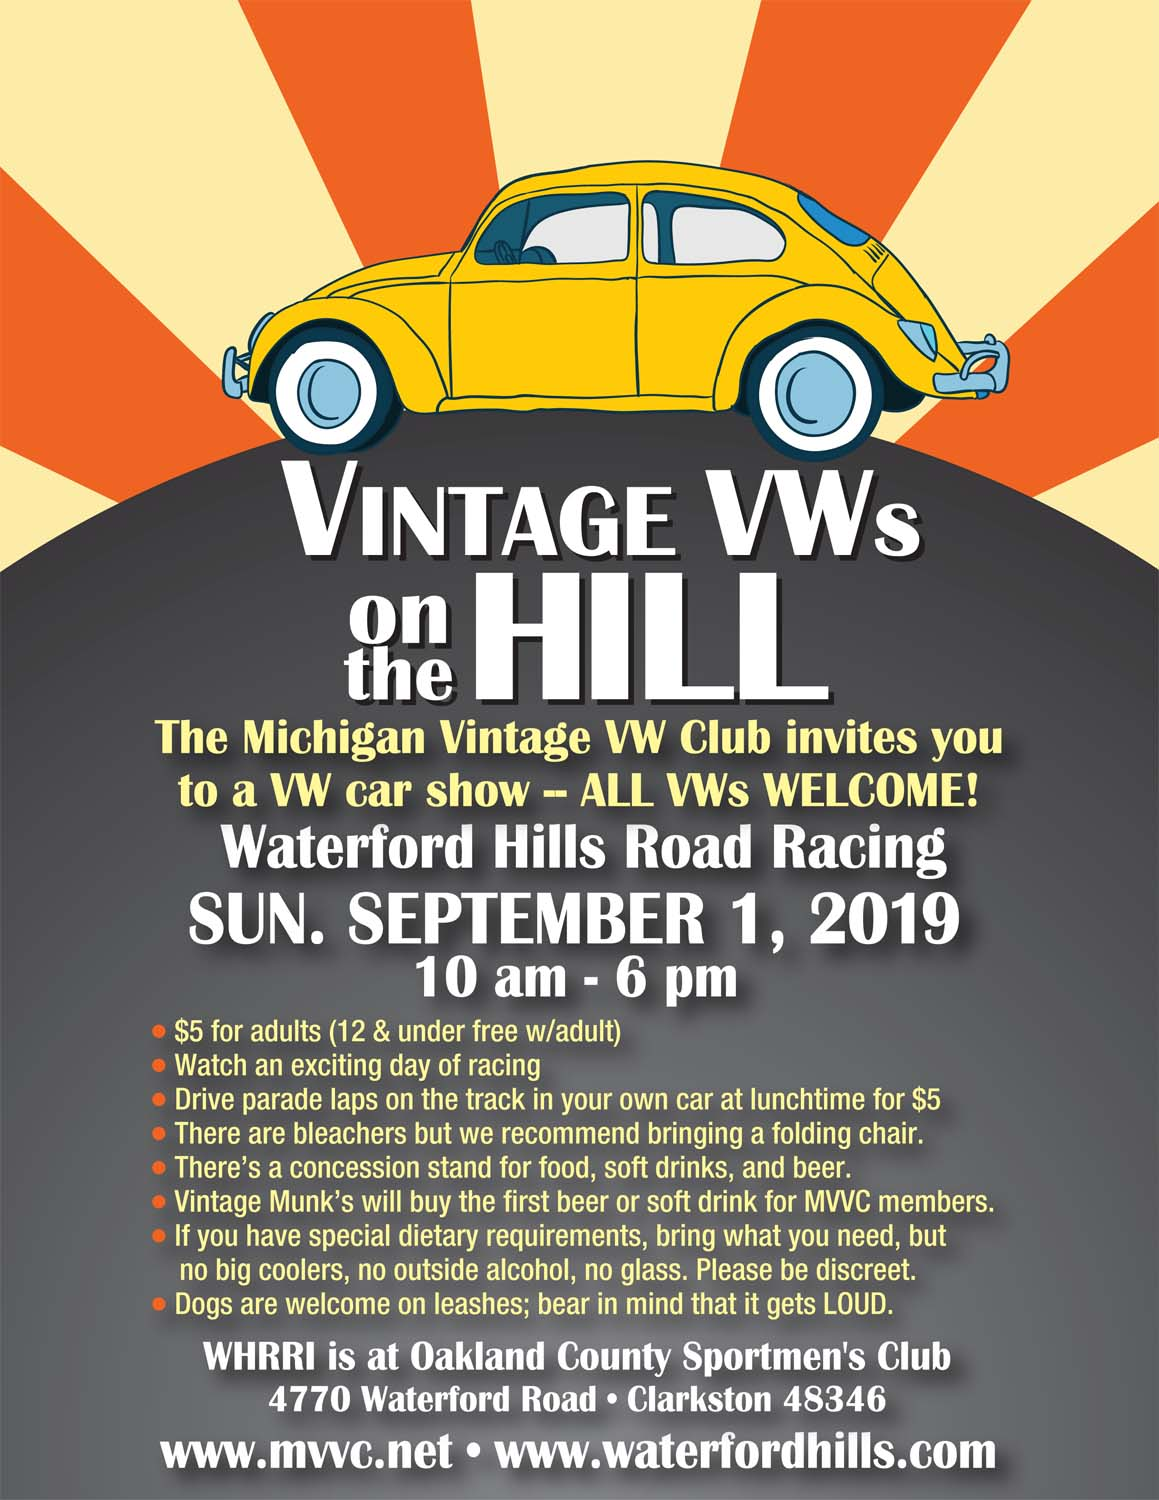 MVVC on the Hill 2019